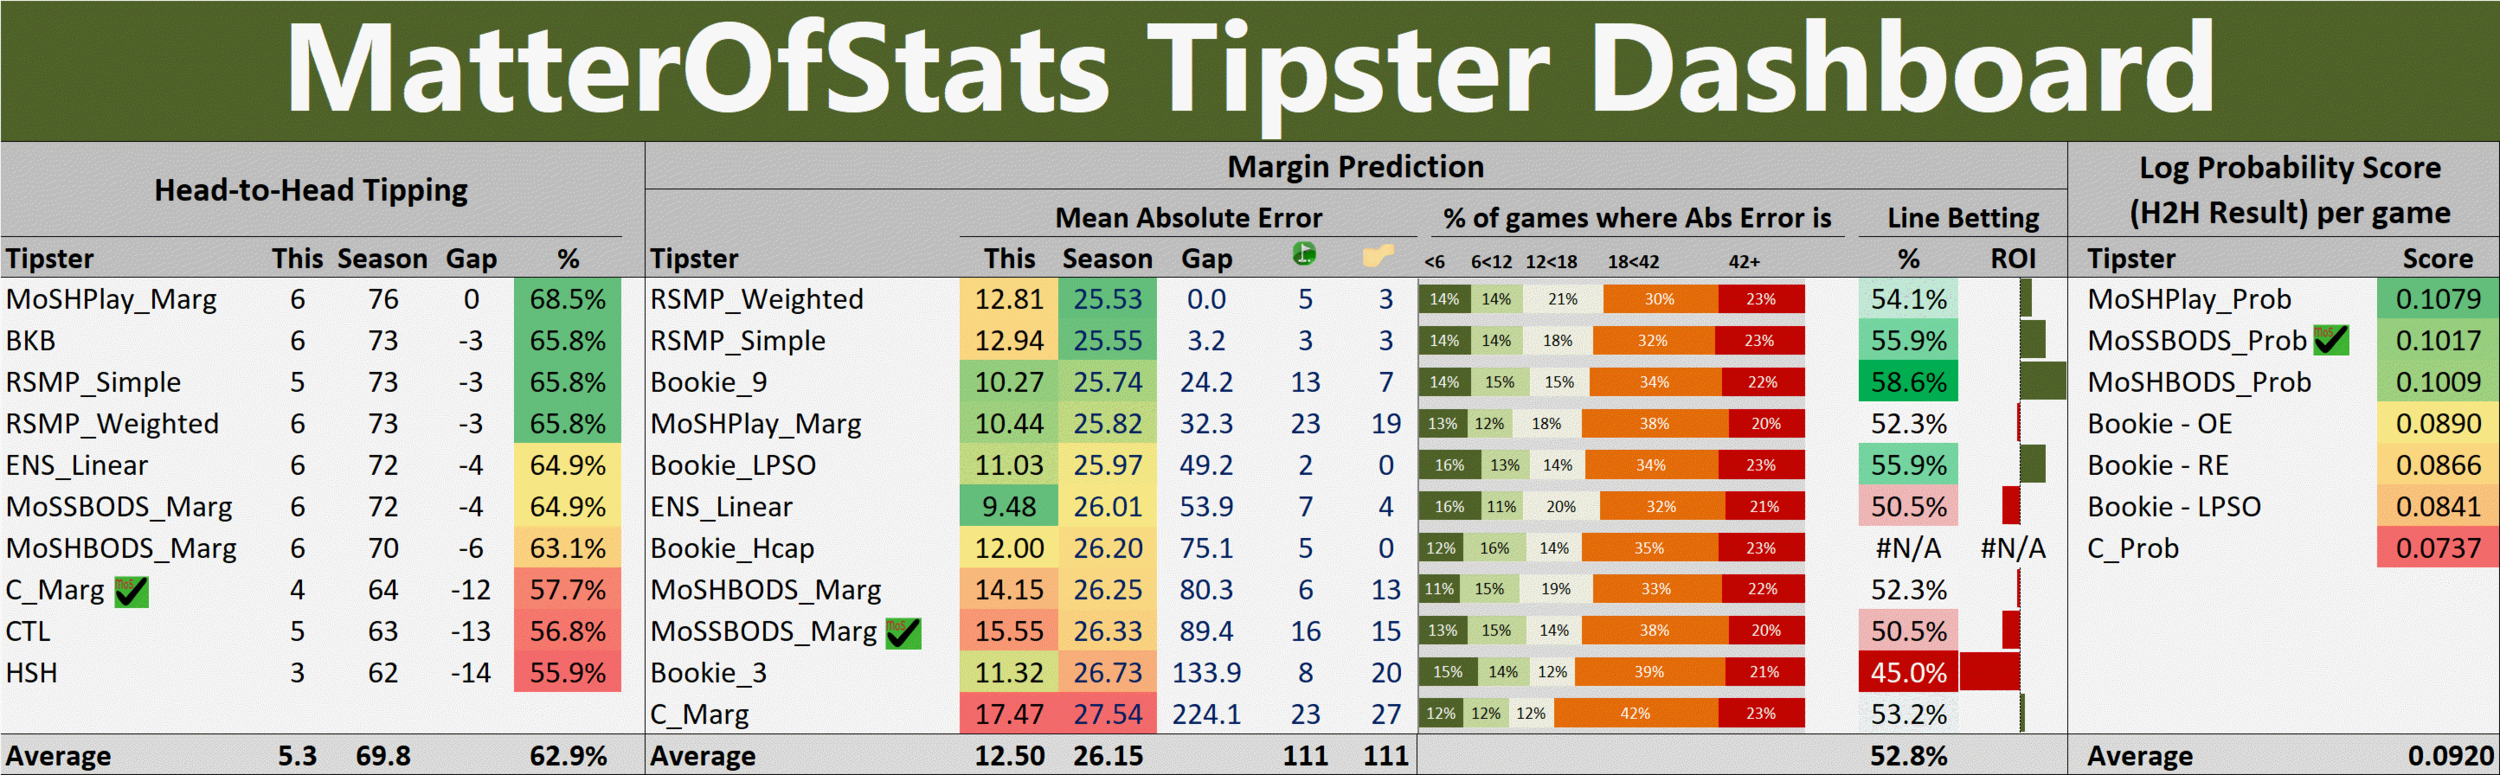 R13 - Tipster Dashboard.png